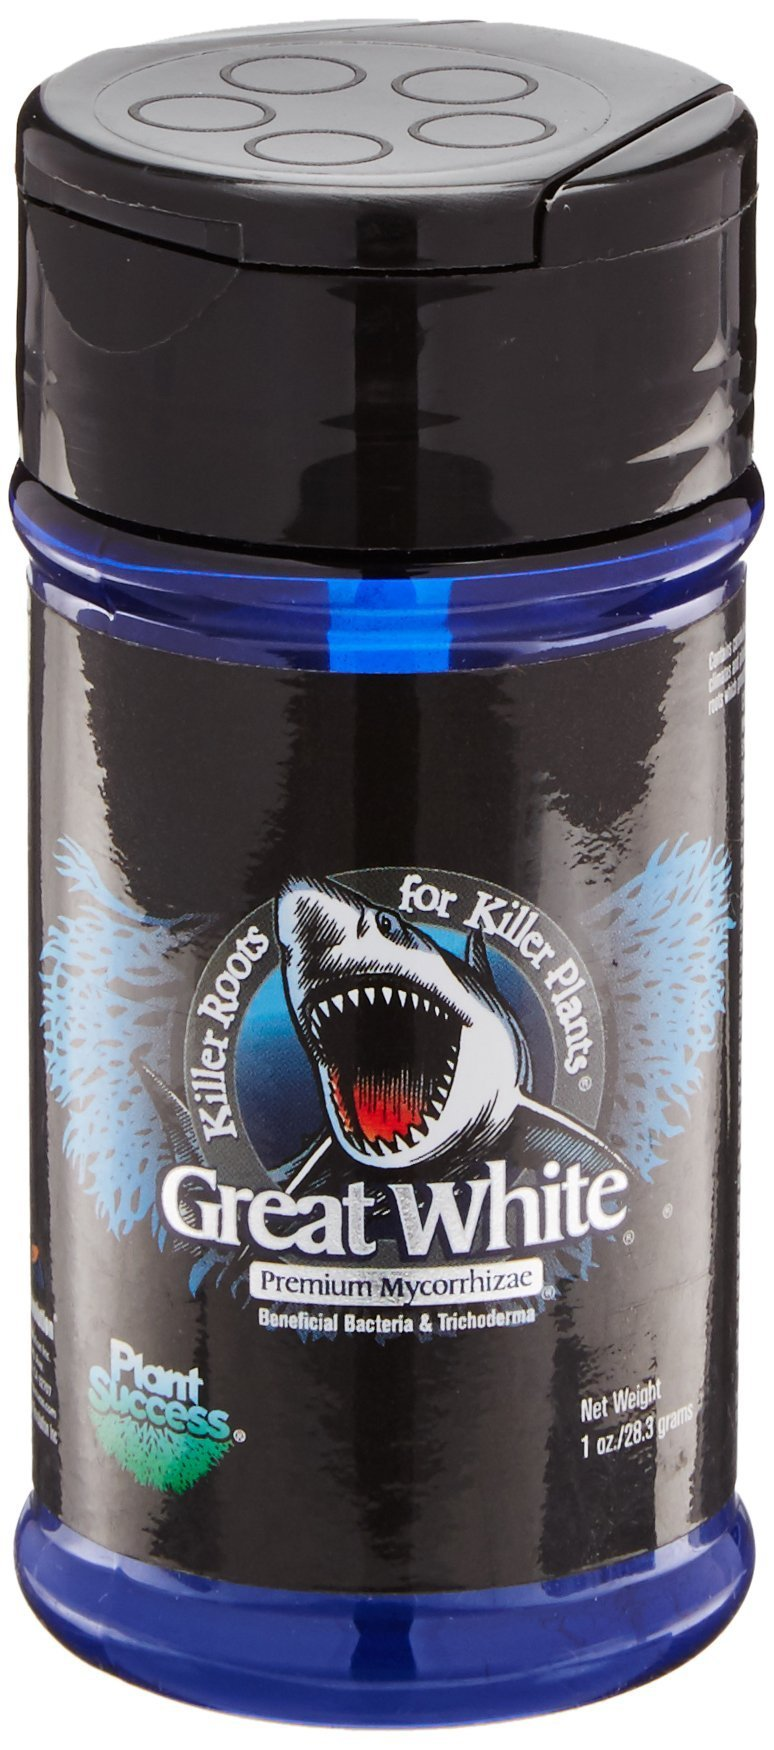 Great White PRPSGW01 FGGRWH-1OZ White Mycorrhizae, 1 oz, 1 Ounce